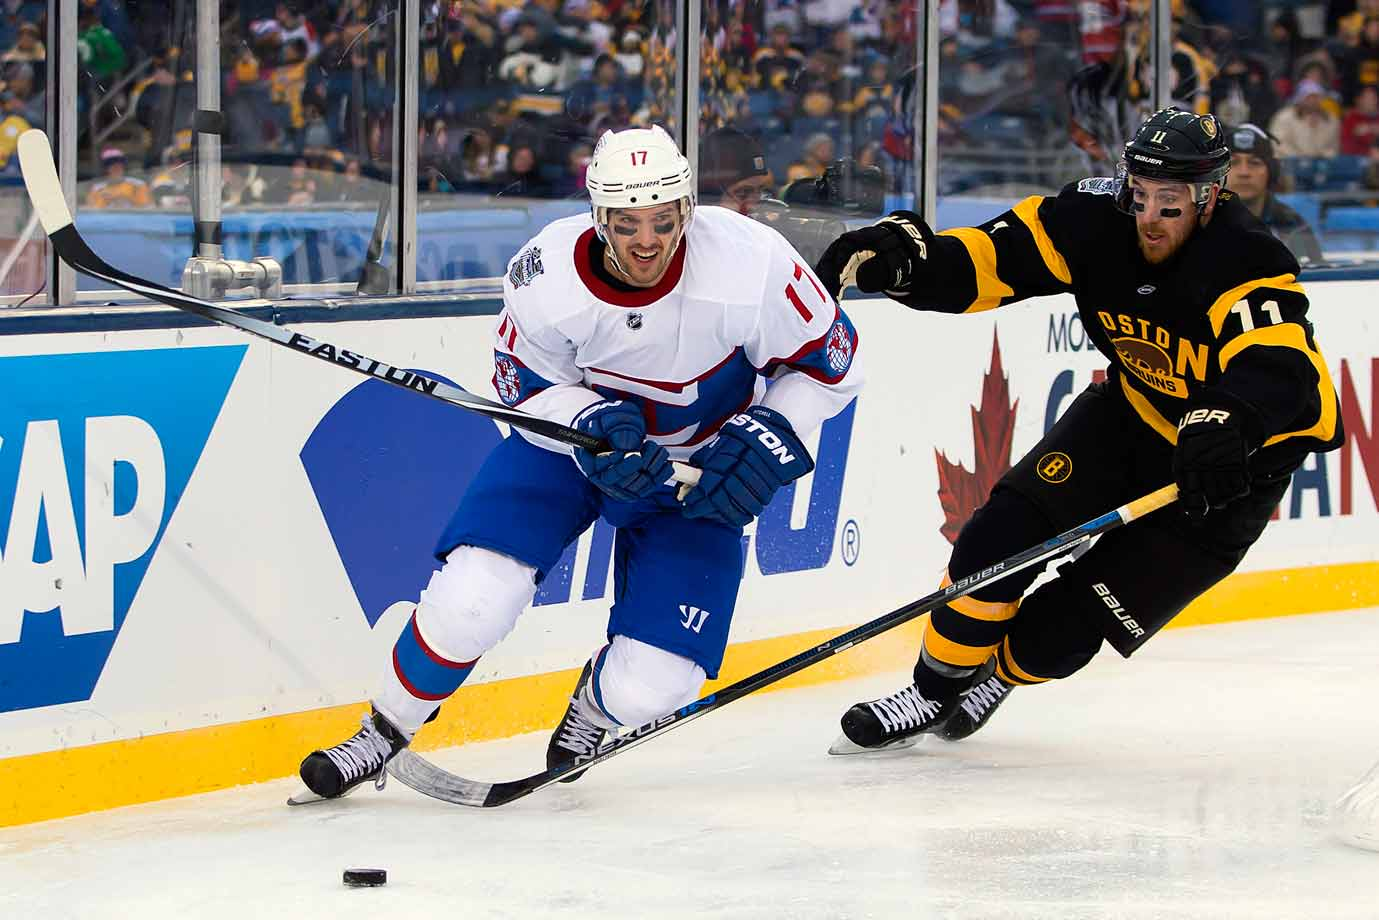 Montreal's Torrey Mitchell and Boston's Torey Krug pursue the puck.